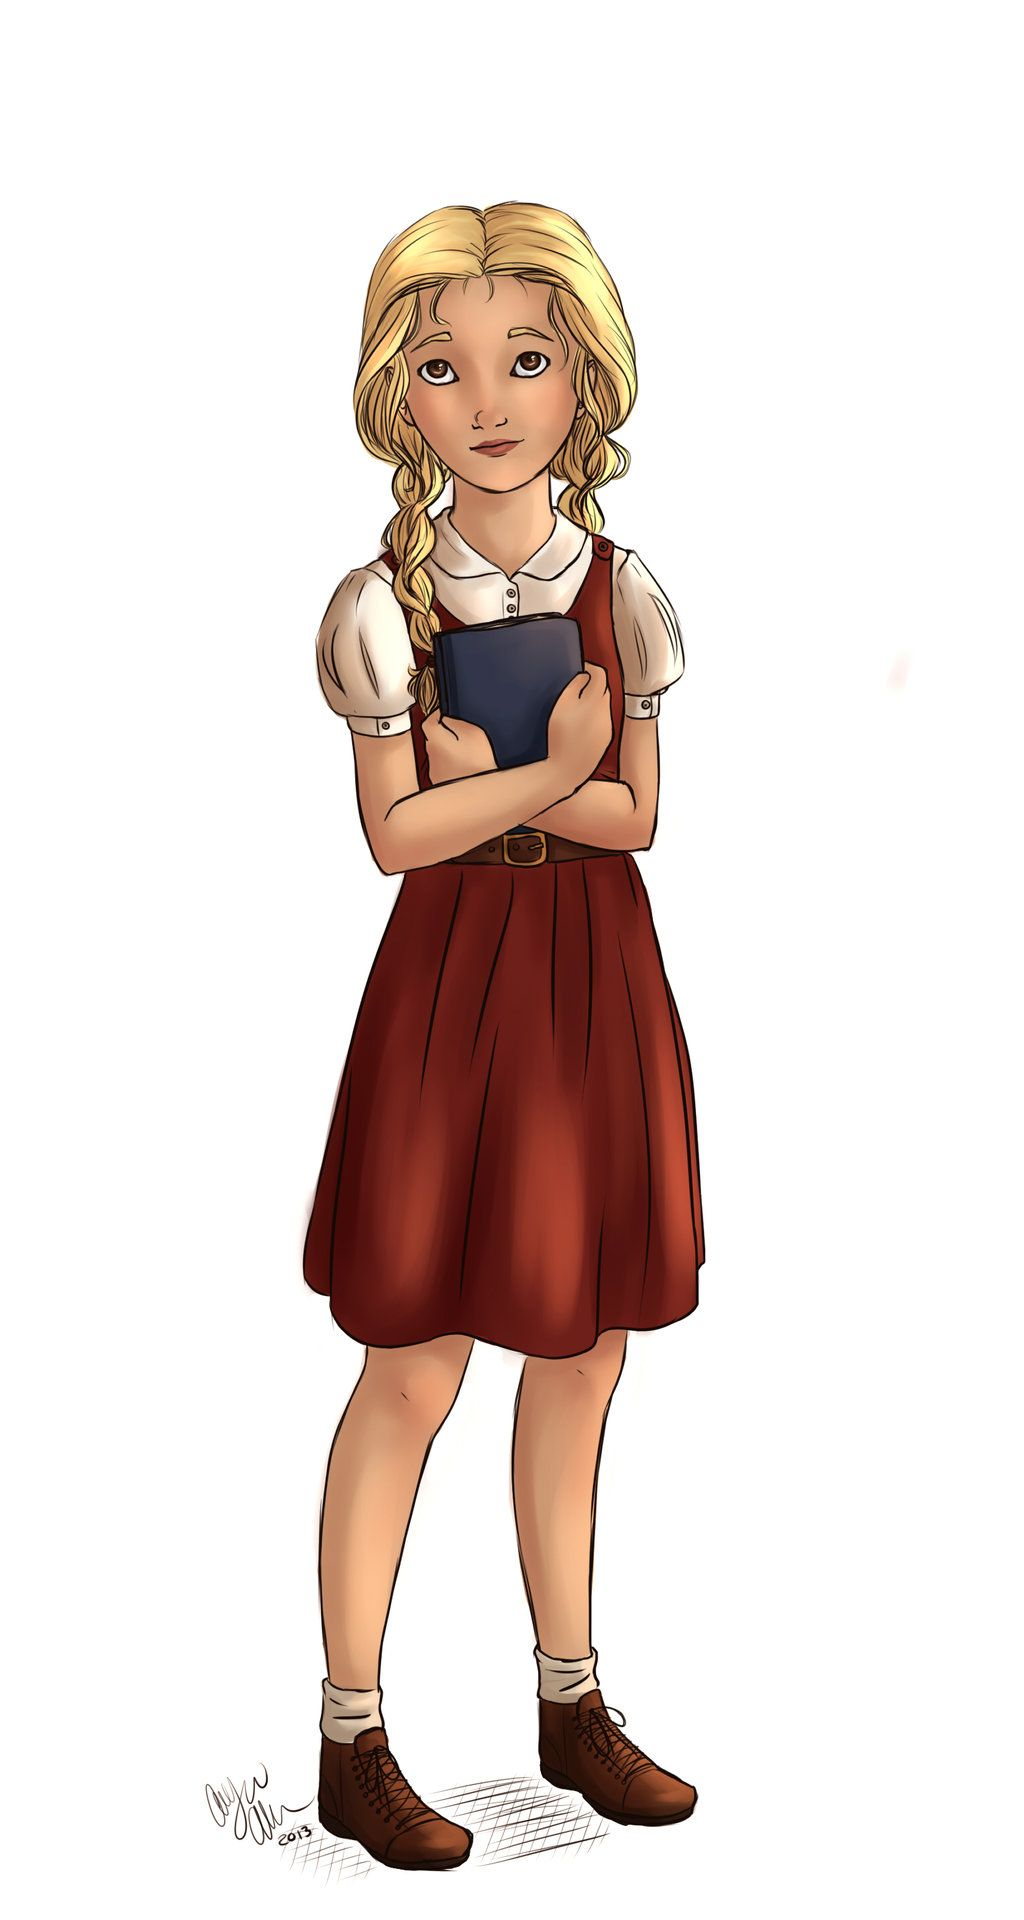 Liesel Meminger By Allicynleiaallen Deviantart Com On Deviantart